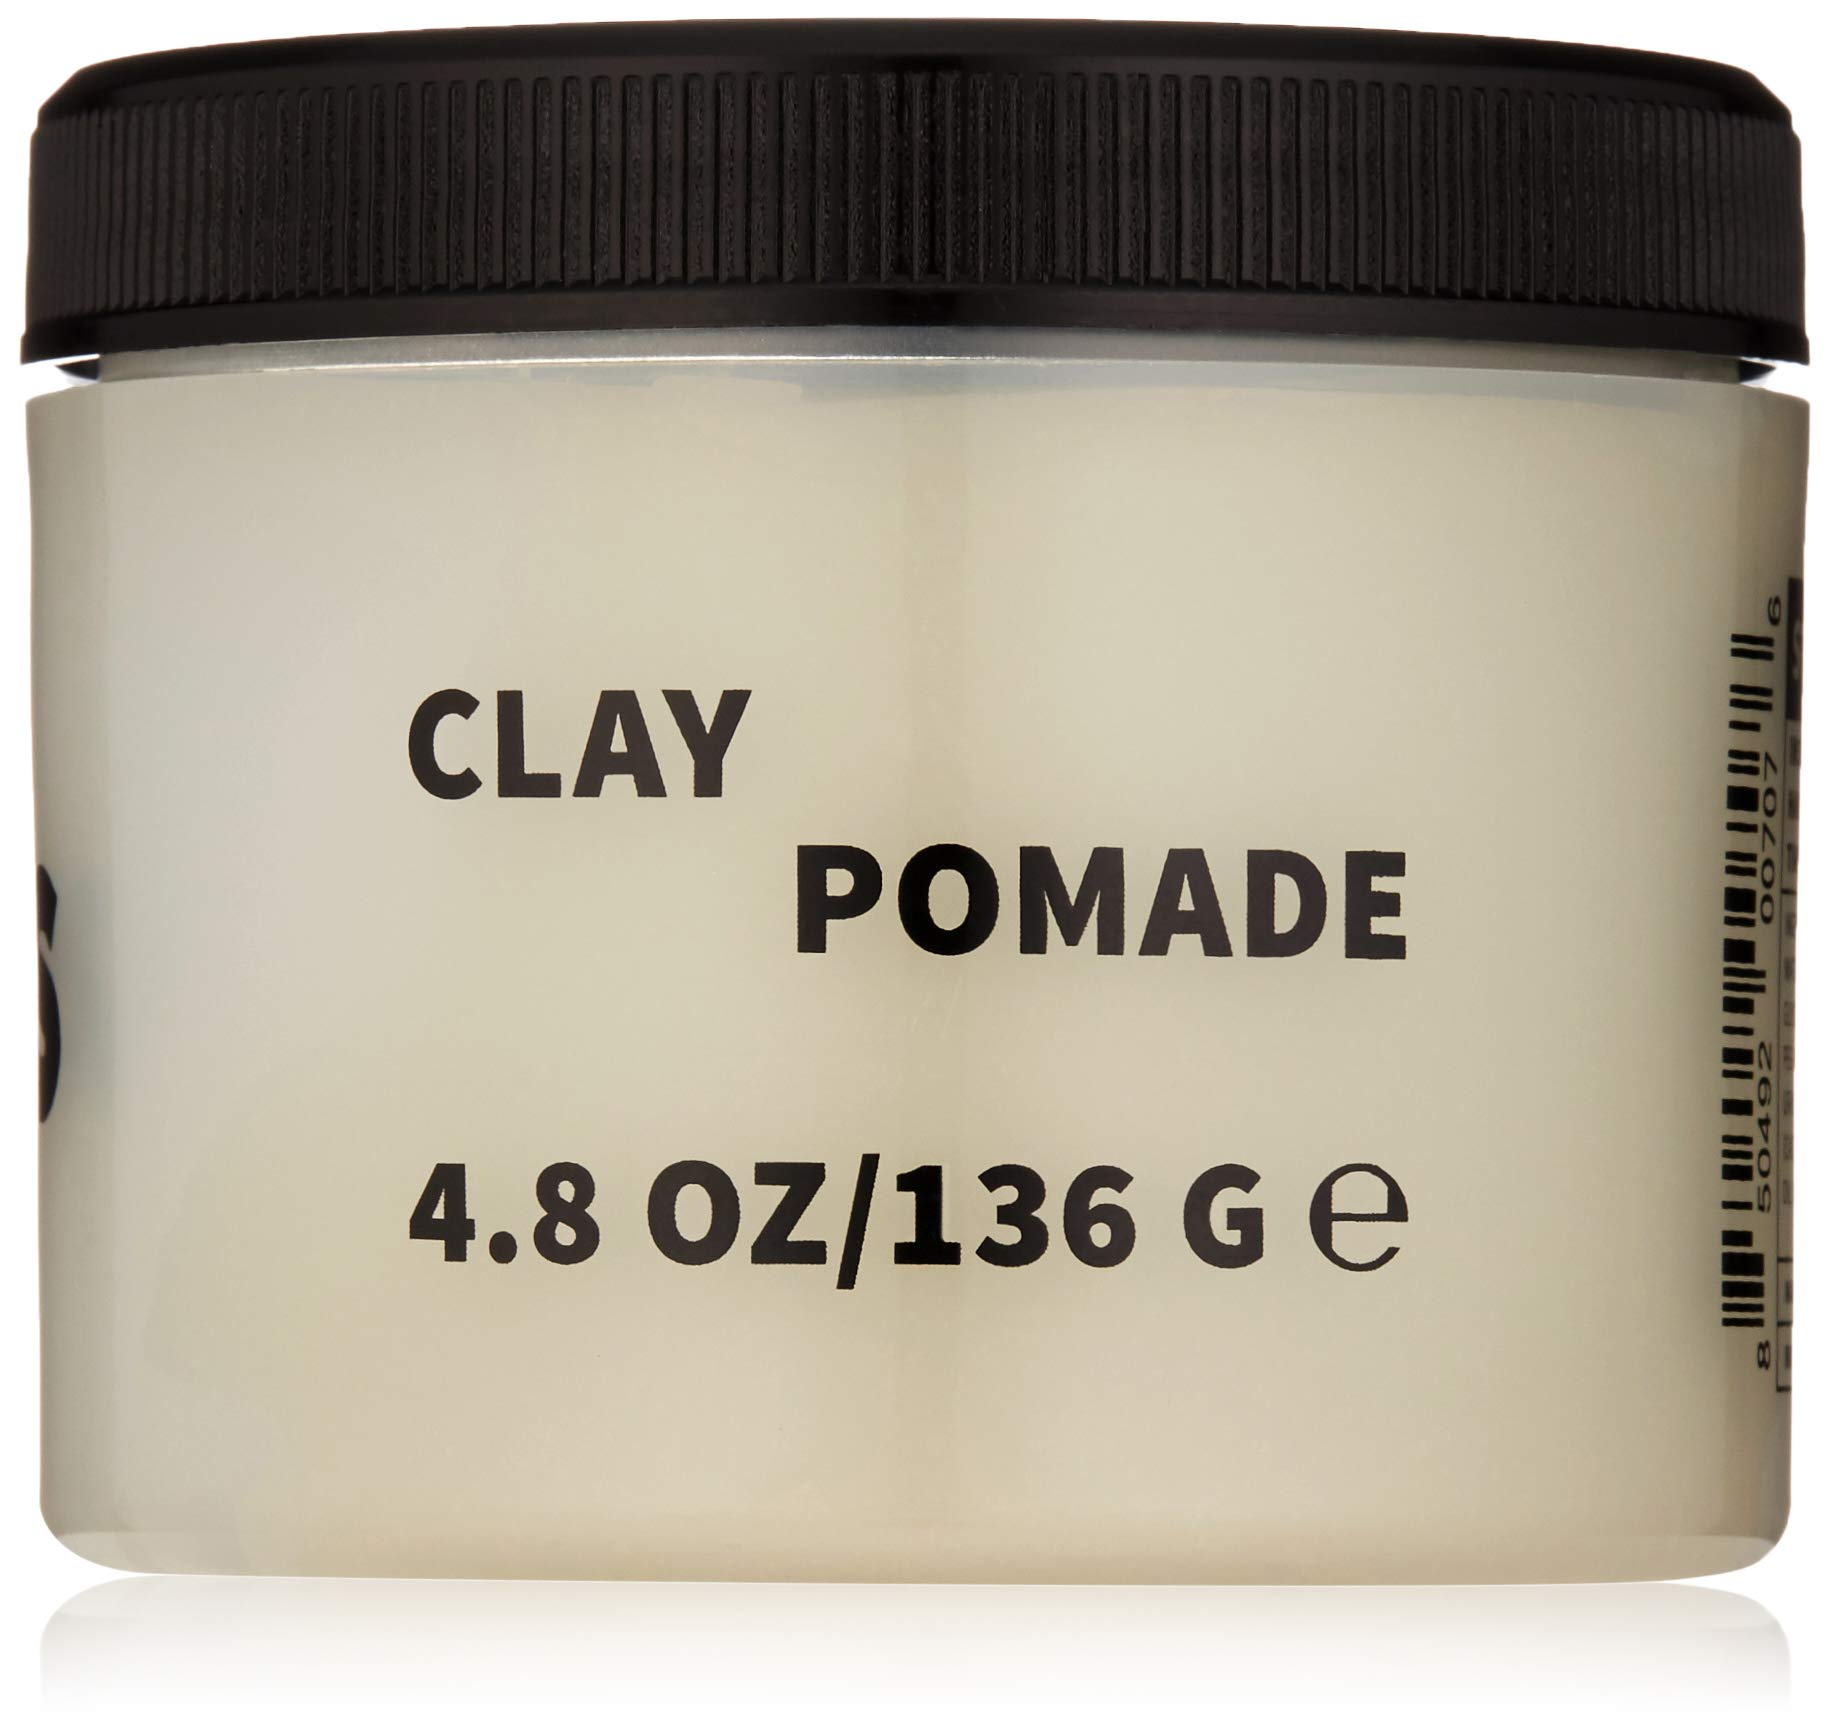 Rudy's Clay Pomade, 4.8 oz by RUDY'S